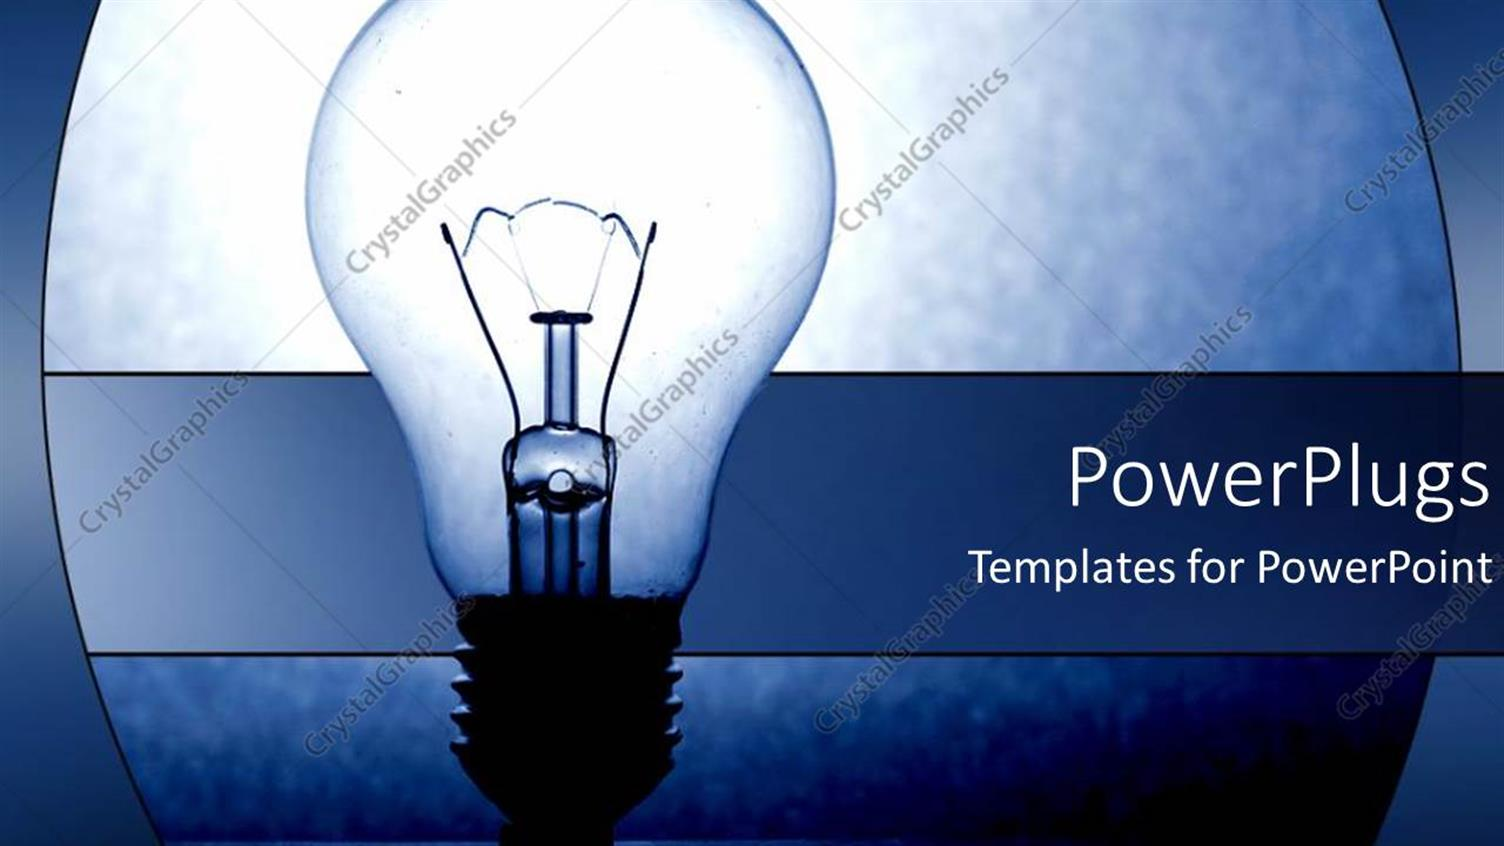 PowerPoint Template Displaying Light-Bulb as a Metaphor for Ideas on a Blue Background